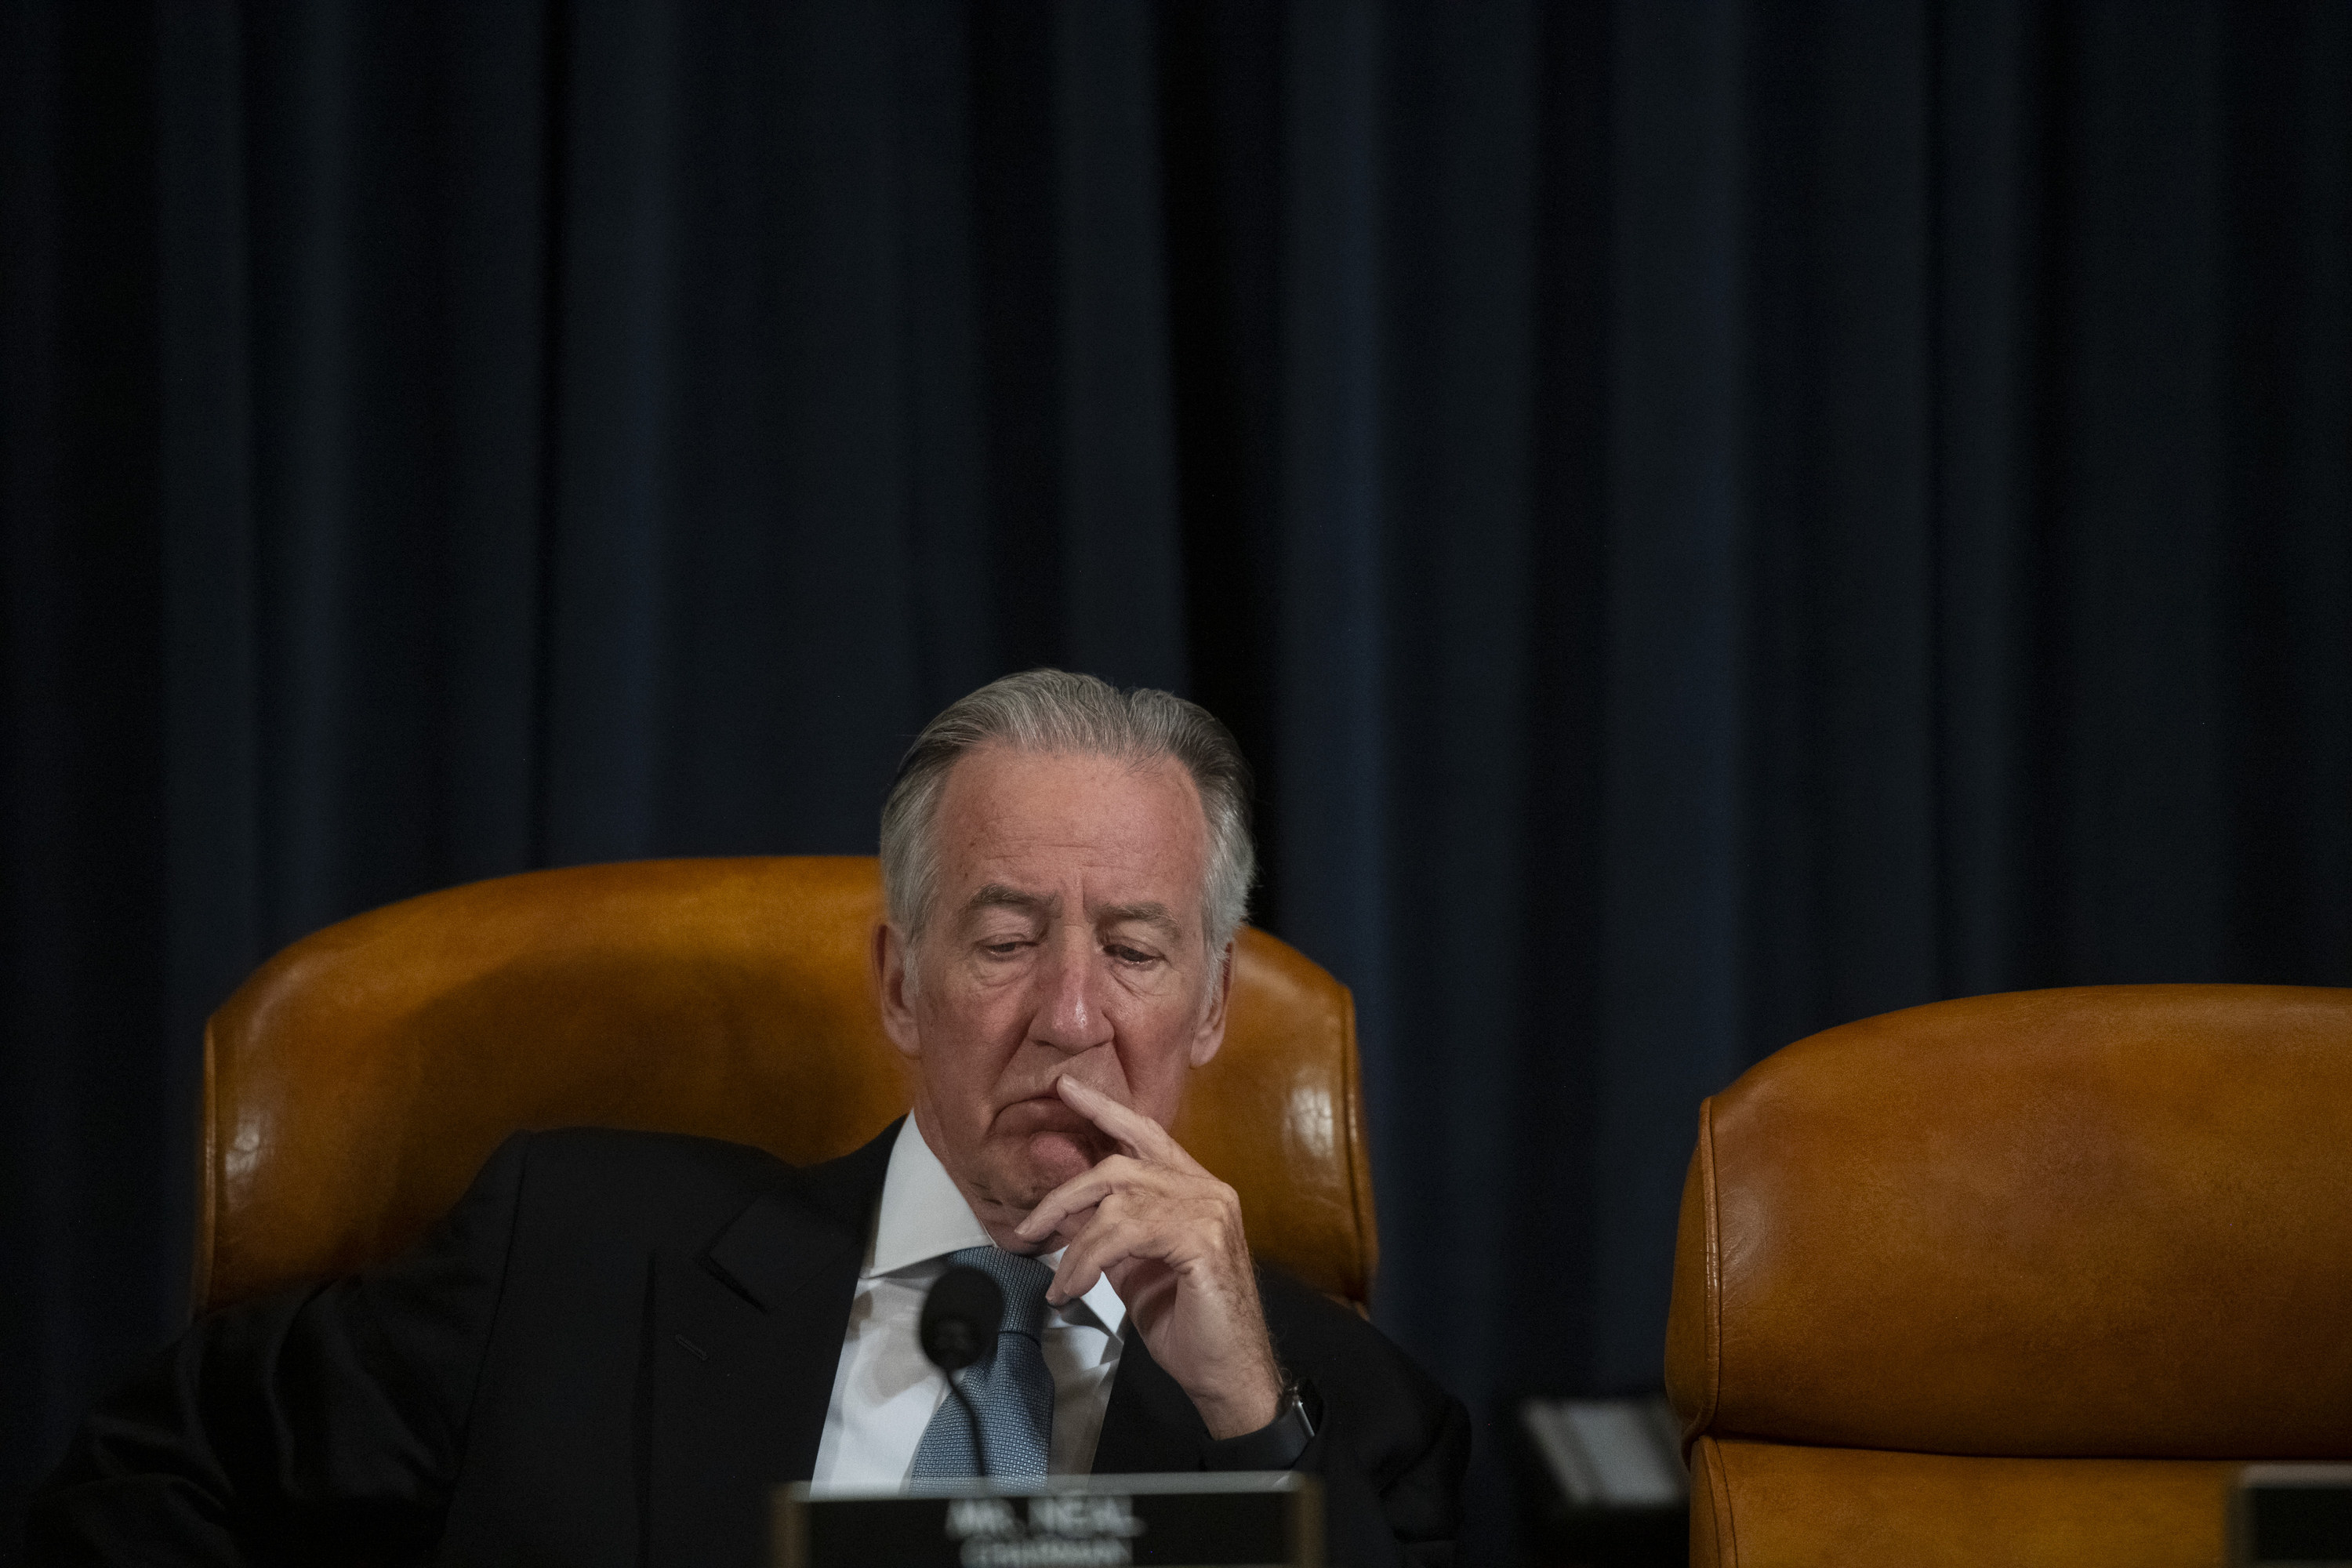 Richard Neal sits on a leather chair with his hand to his face during a congressional committee meeting